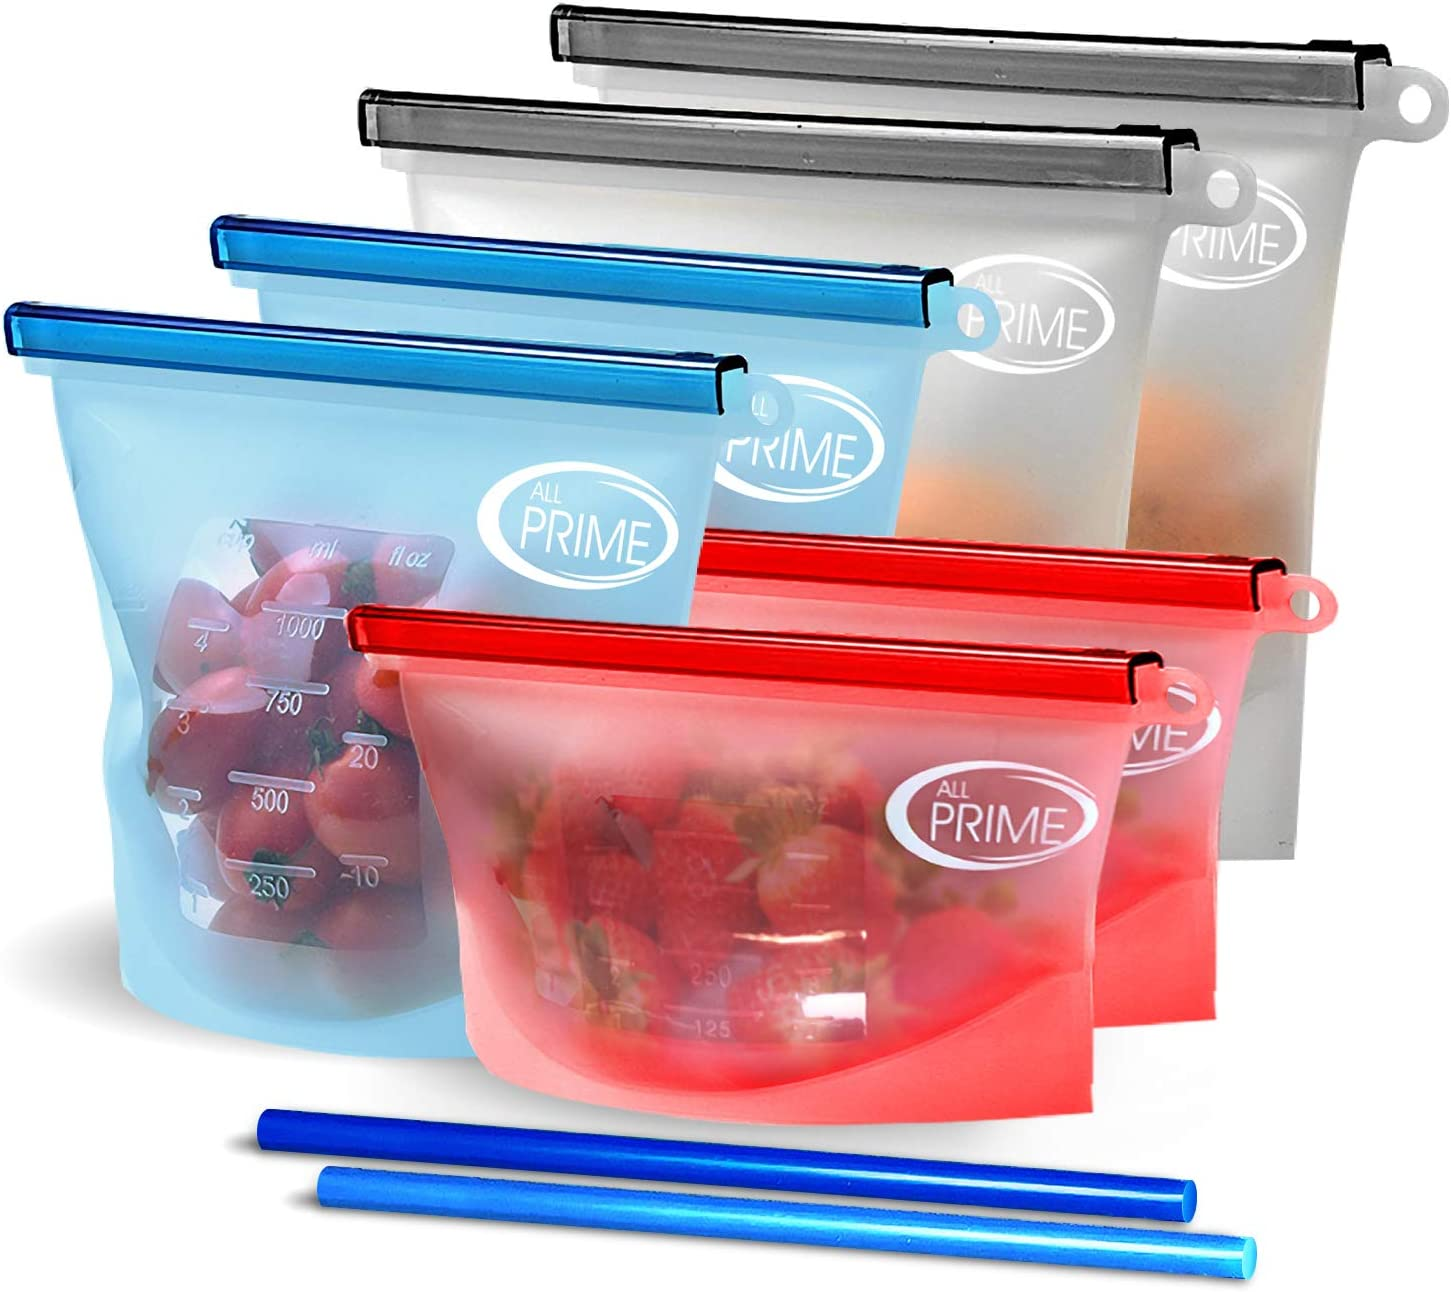 All Prime Reusable Silicone Food Storage Bags – 6 Pack Zip Top Containers + 2 Free Silicone Straws - Eco Friendly Food Storage Bags with Zip Lock Seal – Reusable Silicone Food Bags